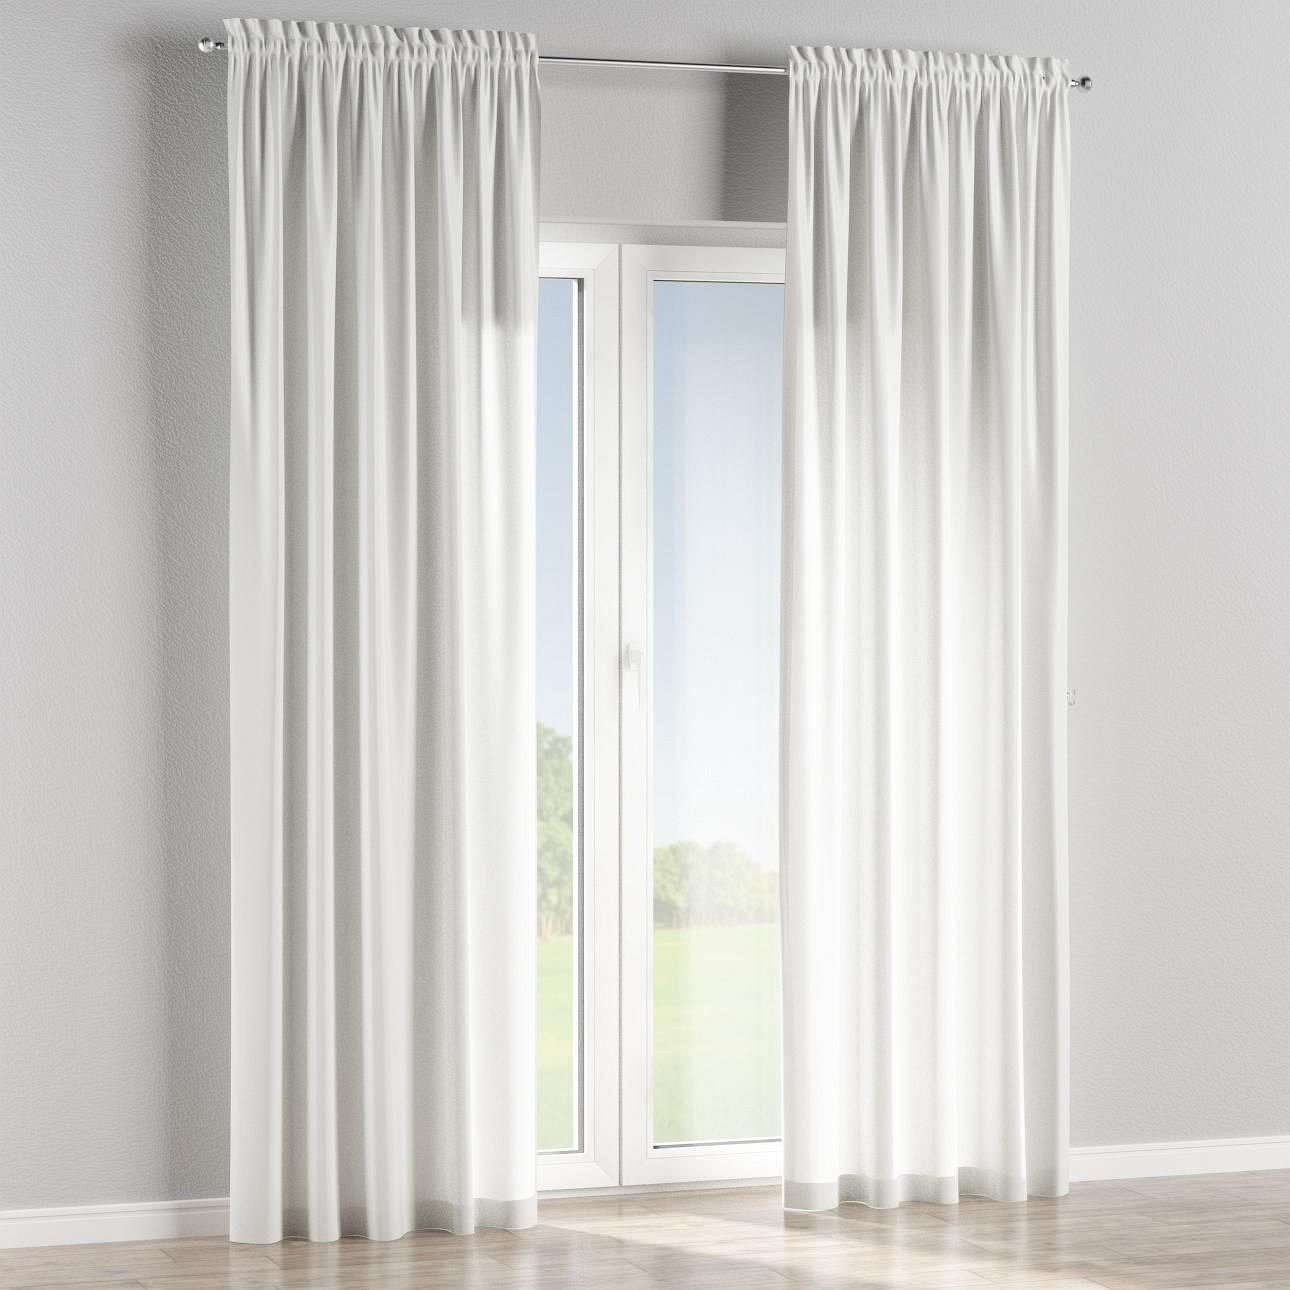 Slot and frill lined curtains in collection Cardiff, fabric: 136-32